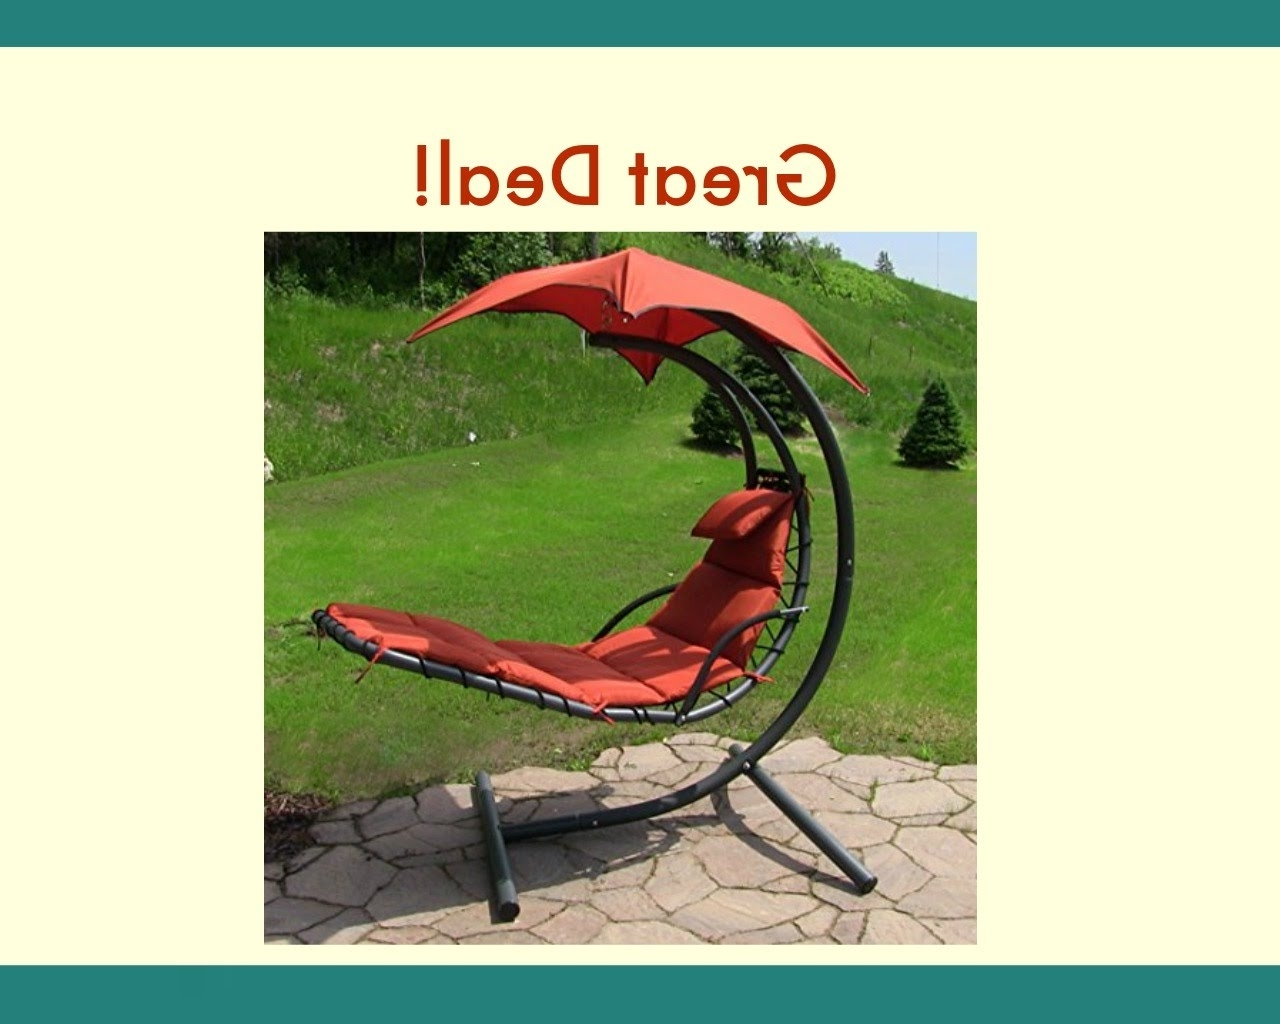 Chaise Lounge Swing Chairs Pertaining To Preferred Sunnydaze Floating Chaise Lounger Swing Chair With Canopy, 55 Inch (View 5 of 15)